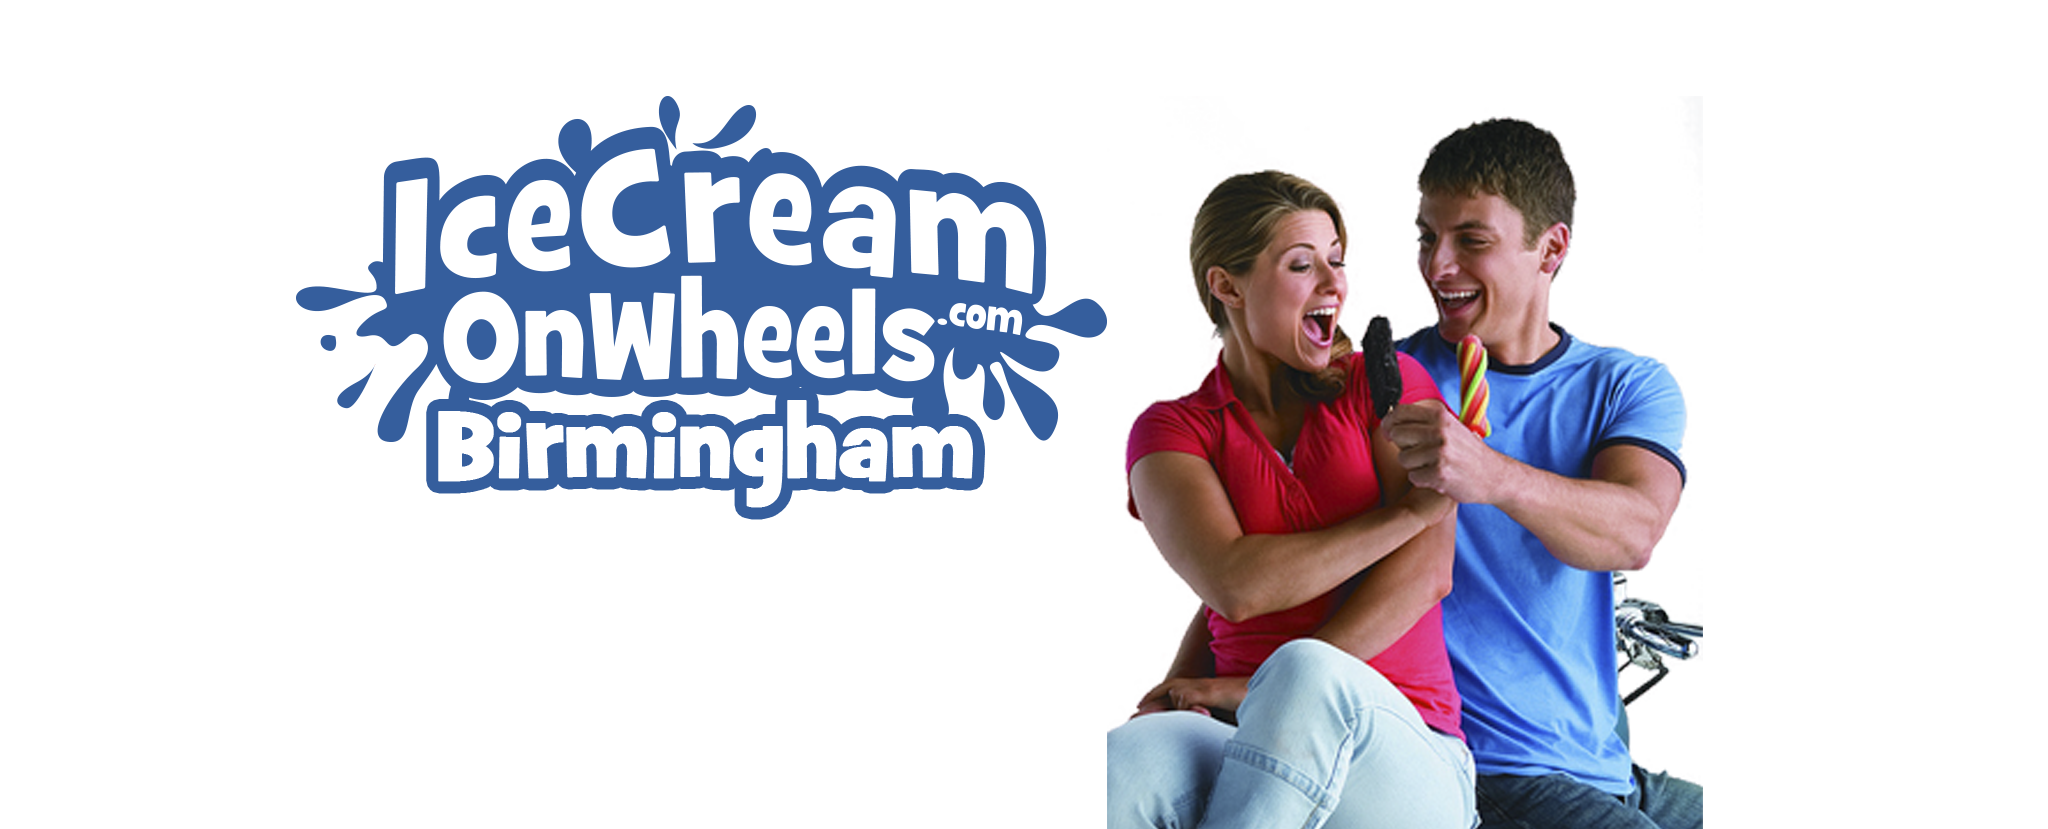 Delivering smiles and Ice Cream to your team daily. Call us for Ice Cream in Birmingham Alabama